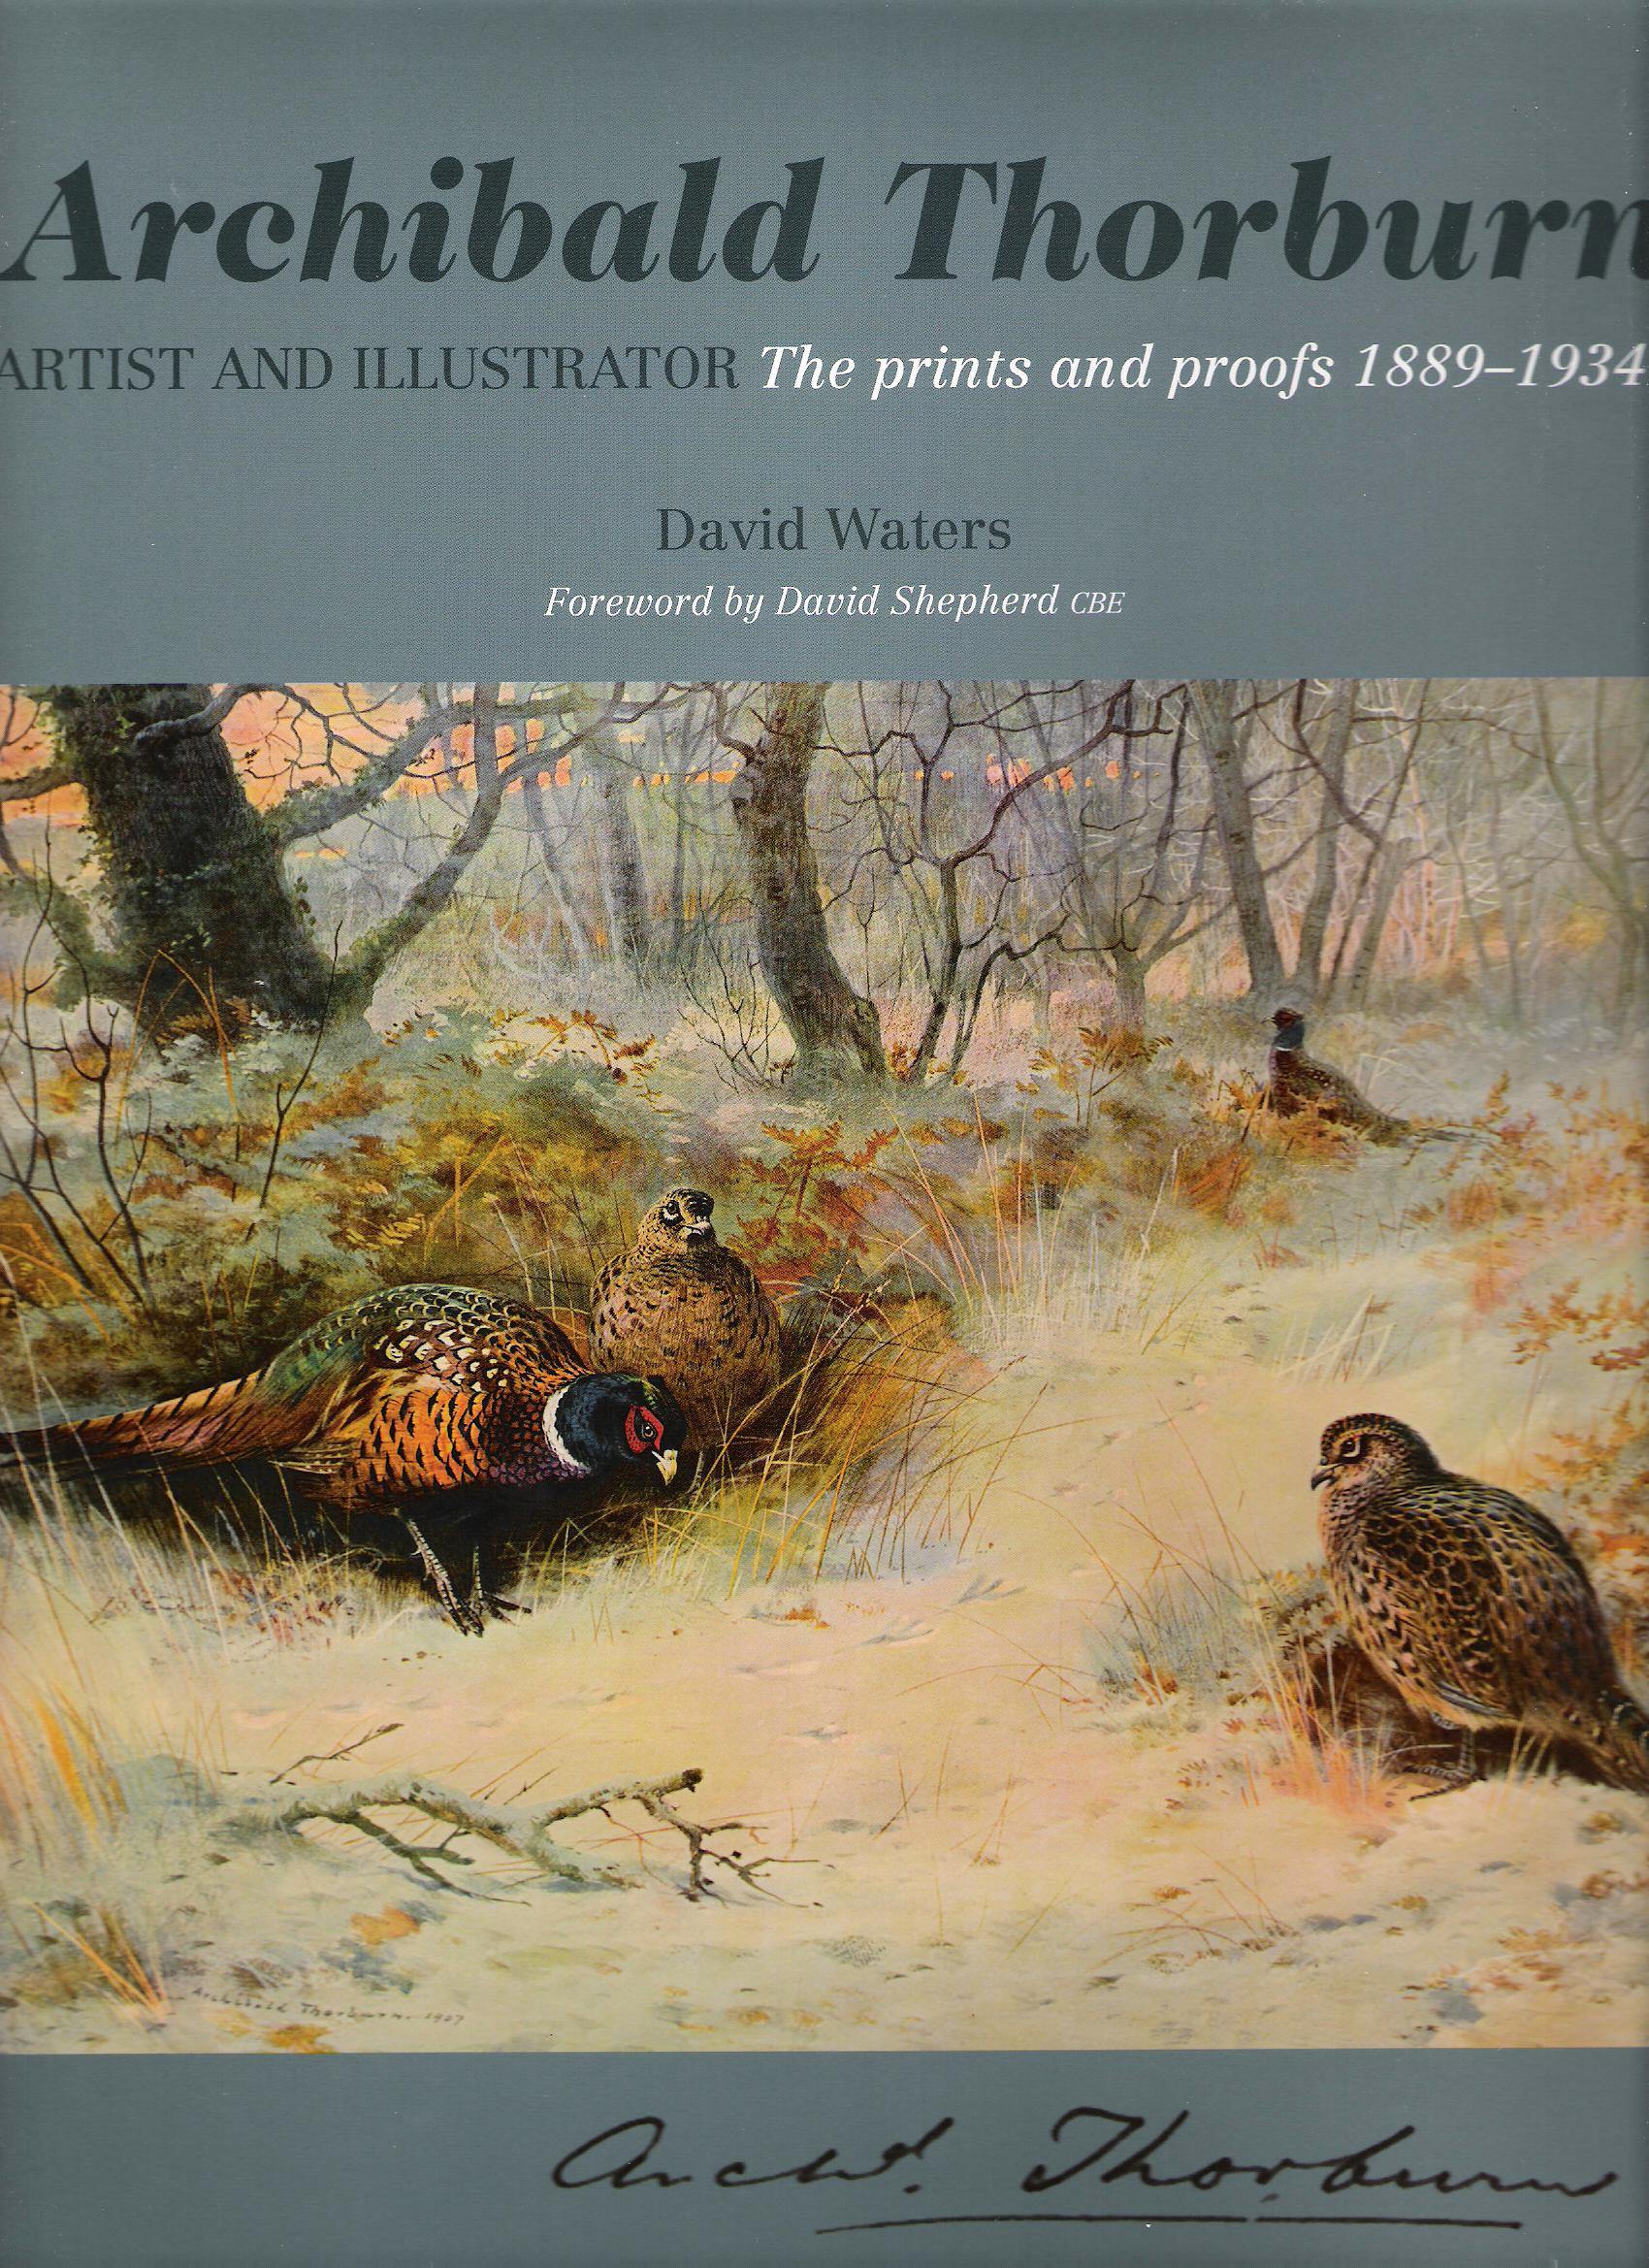 Image for Archibald Thorburn, Artist and Illustrator: The Prints and Proofs 1889-1934.